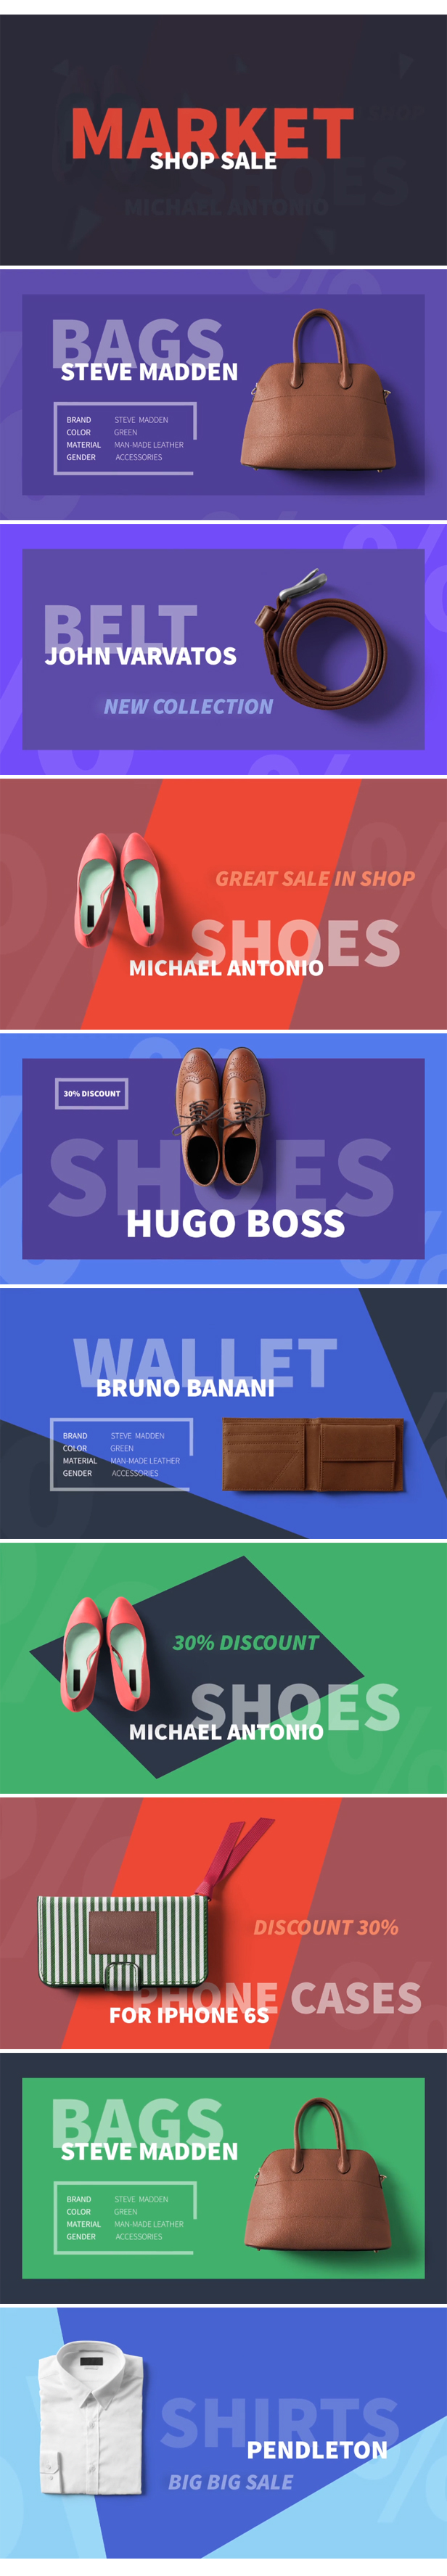 Market Shop Sale 13758420 - Free After Effects Templates